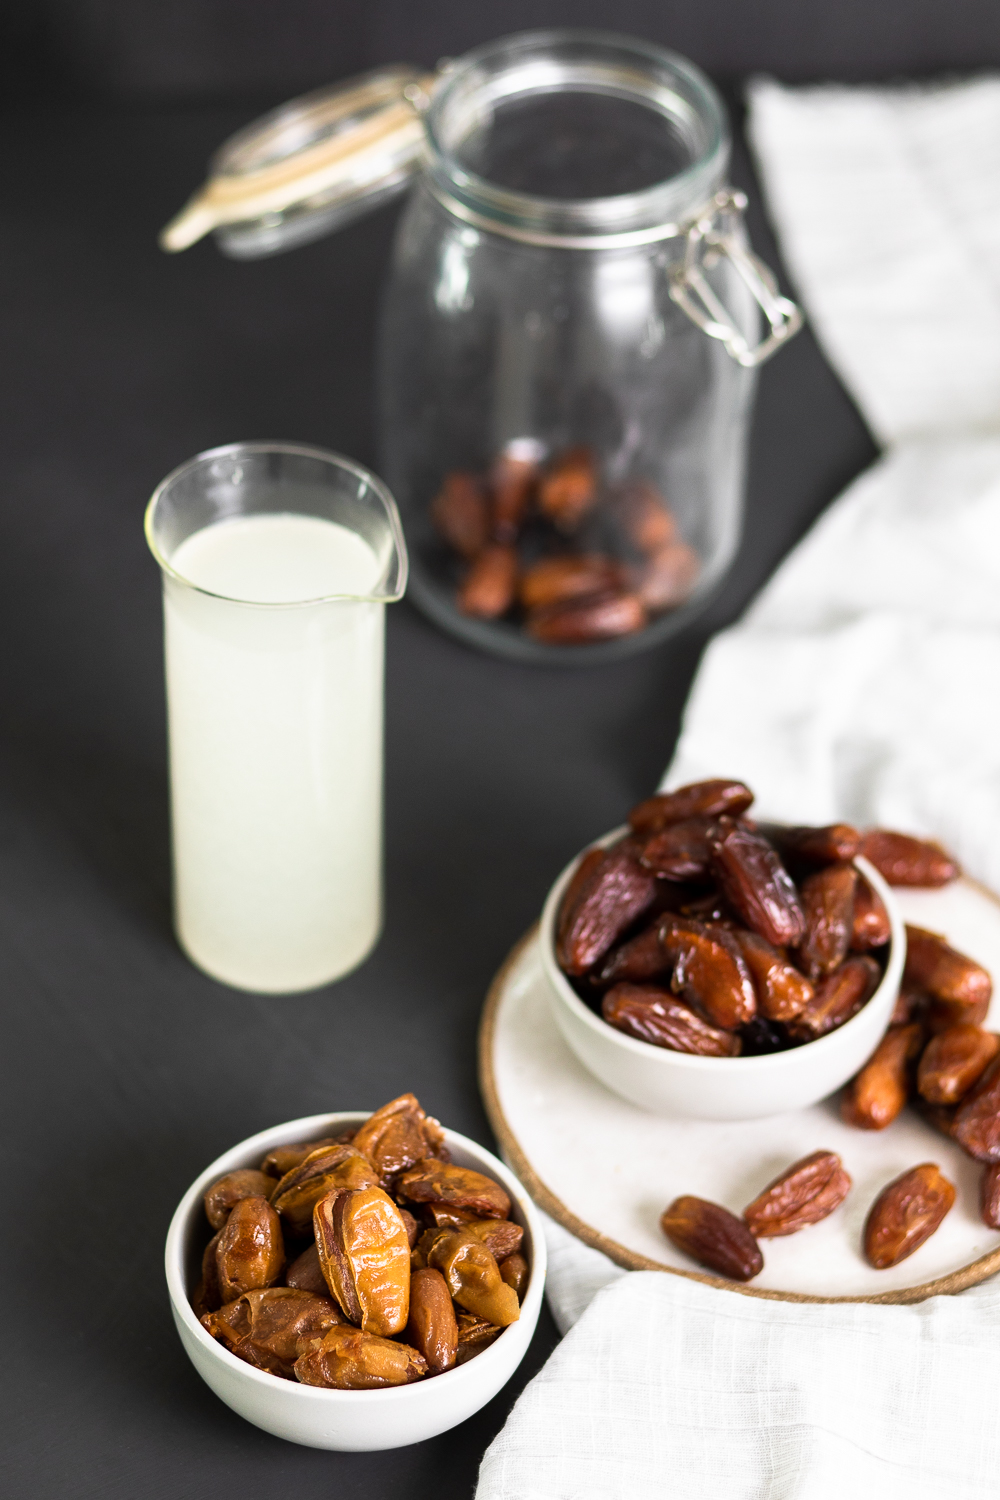 Fermented_Dates_by_Jordan_Pie_Nutritionist_Photographer-1.jpg